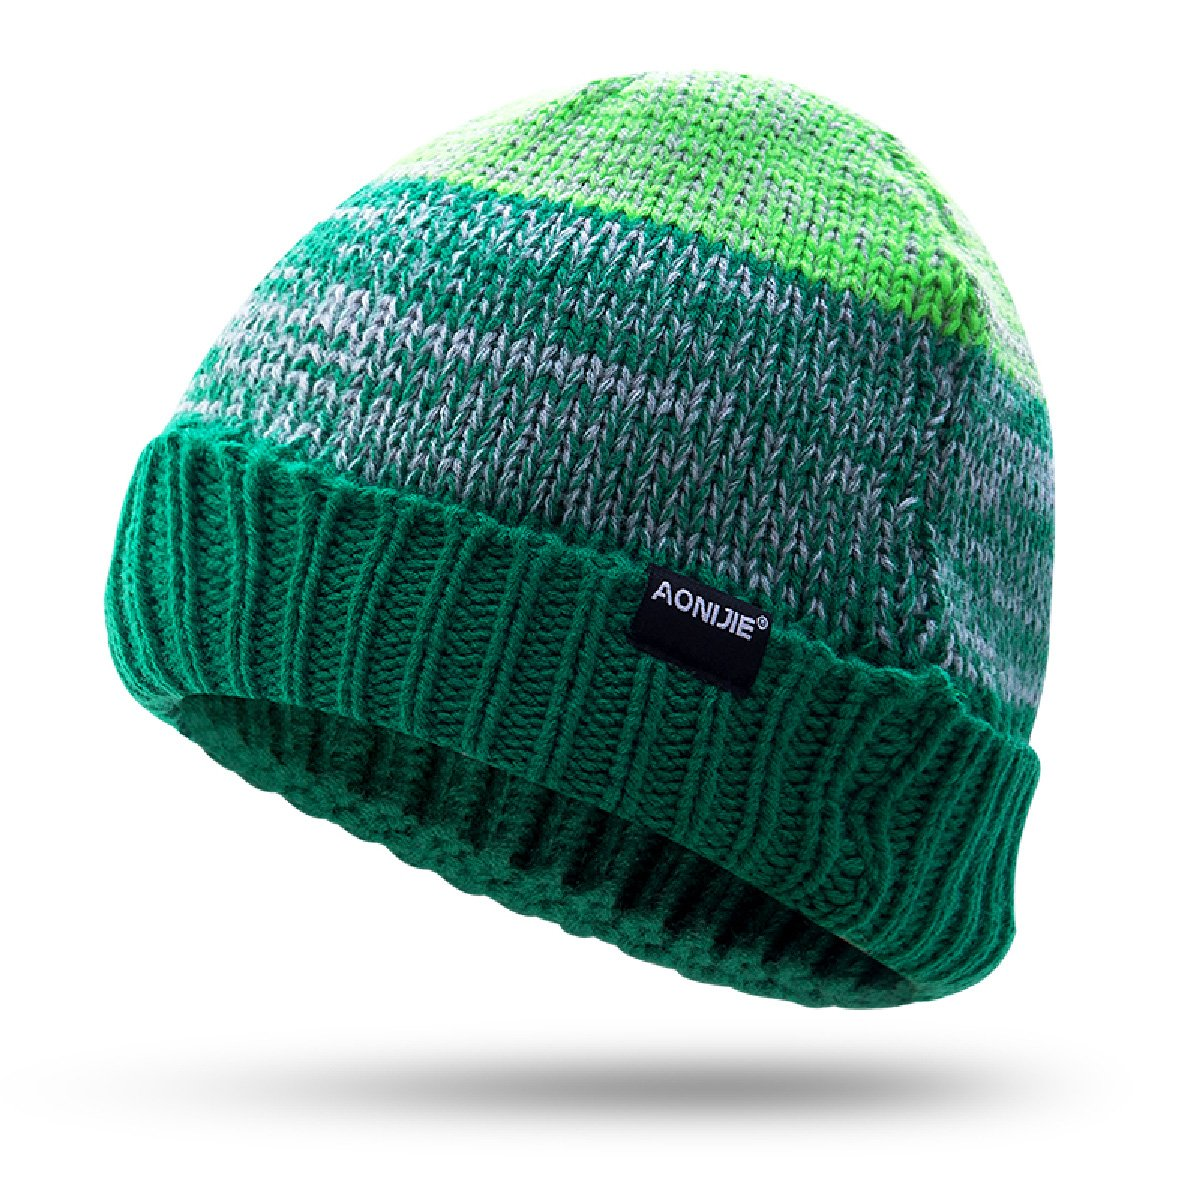 cbad498249d63 Azarxis Winter Beanie Hat Warm Knit Slouchy Hat Unisex Ski Skull Cap (Olive  Green - Flanging)